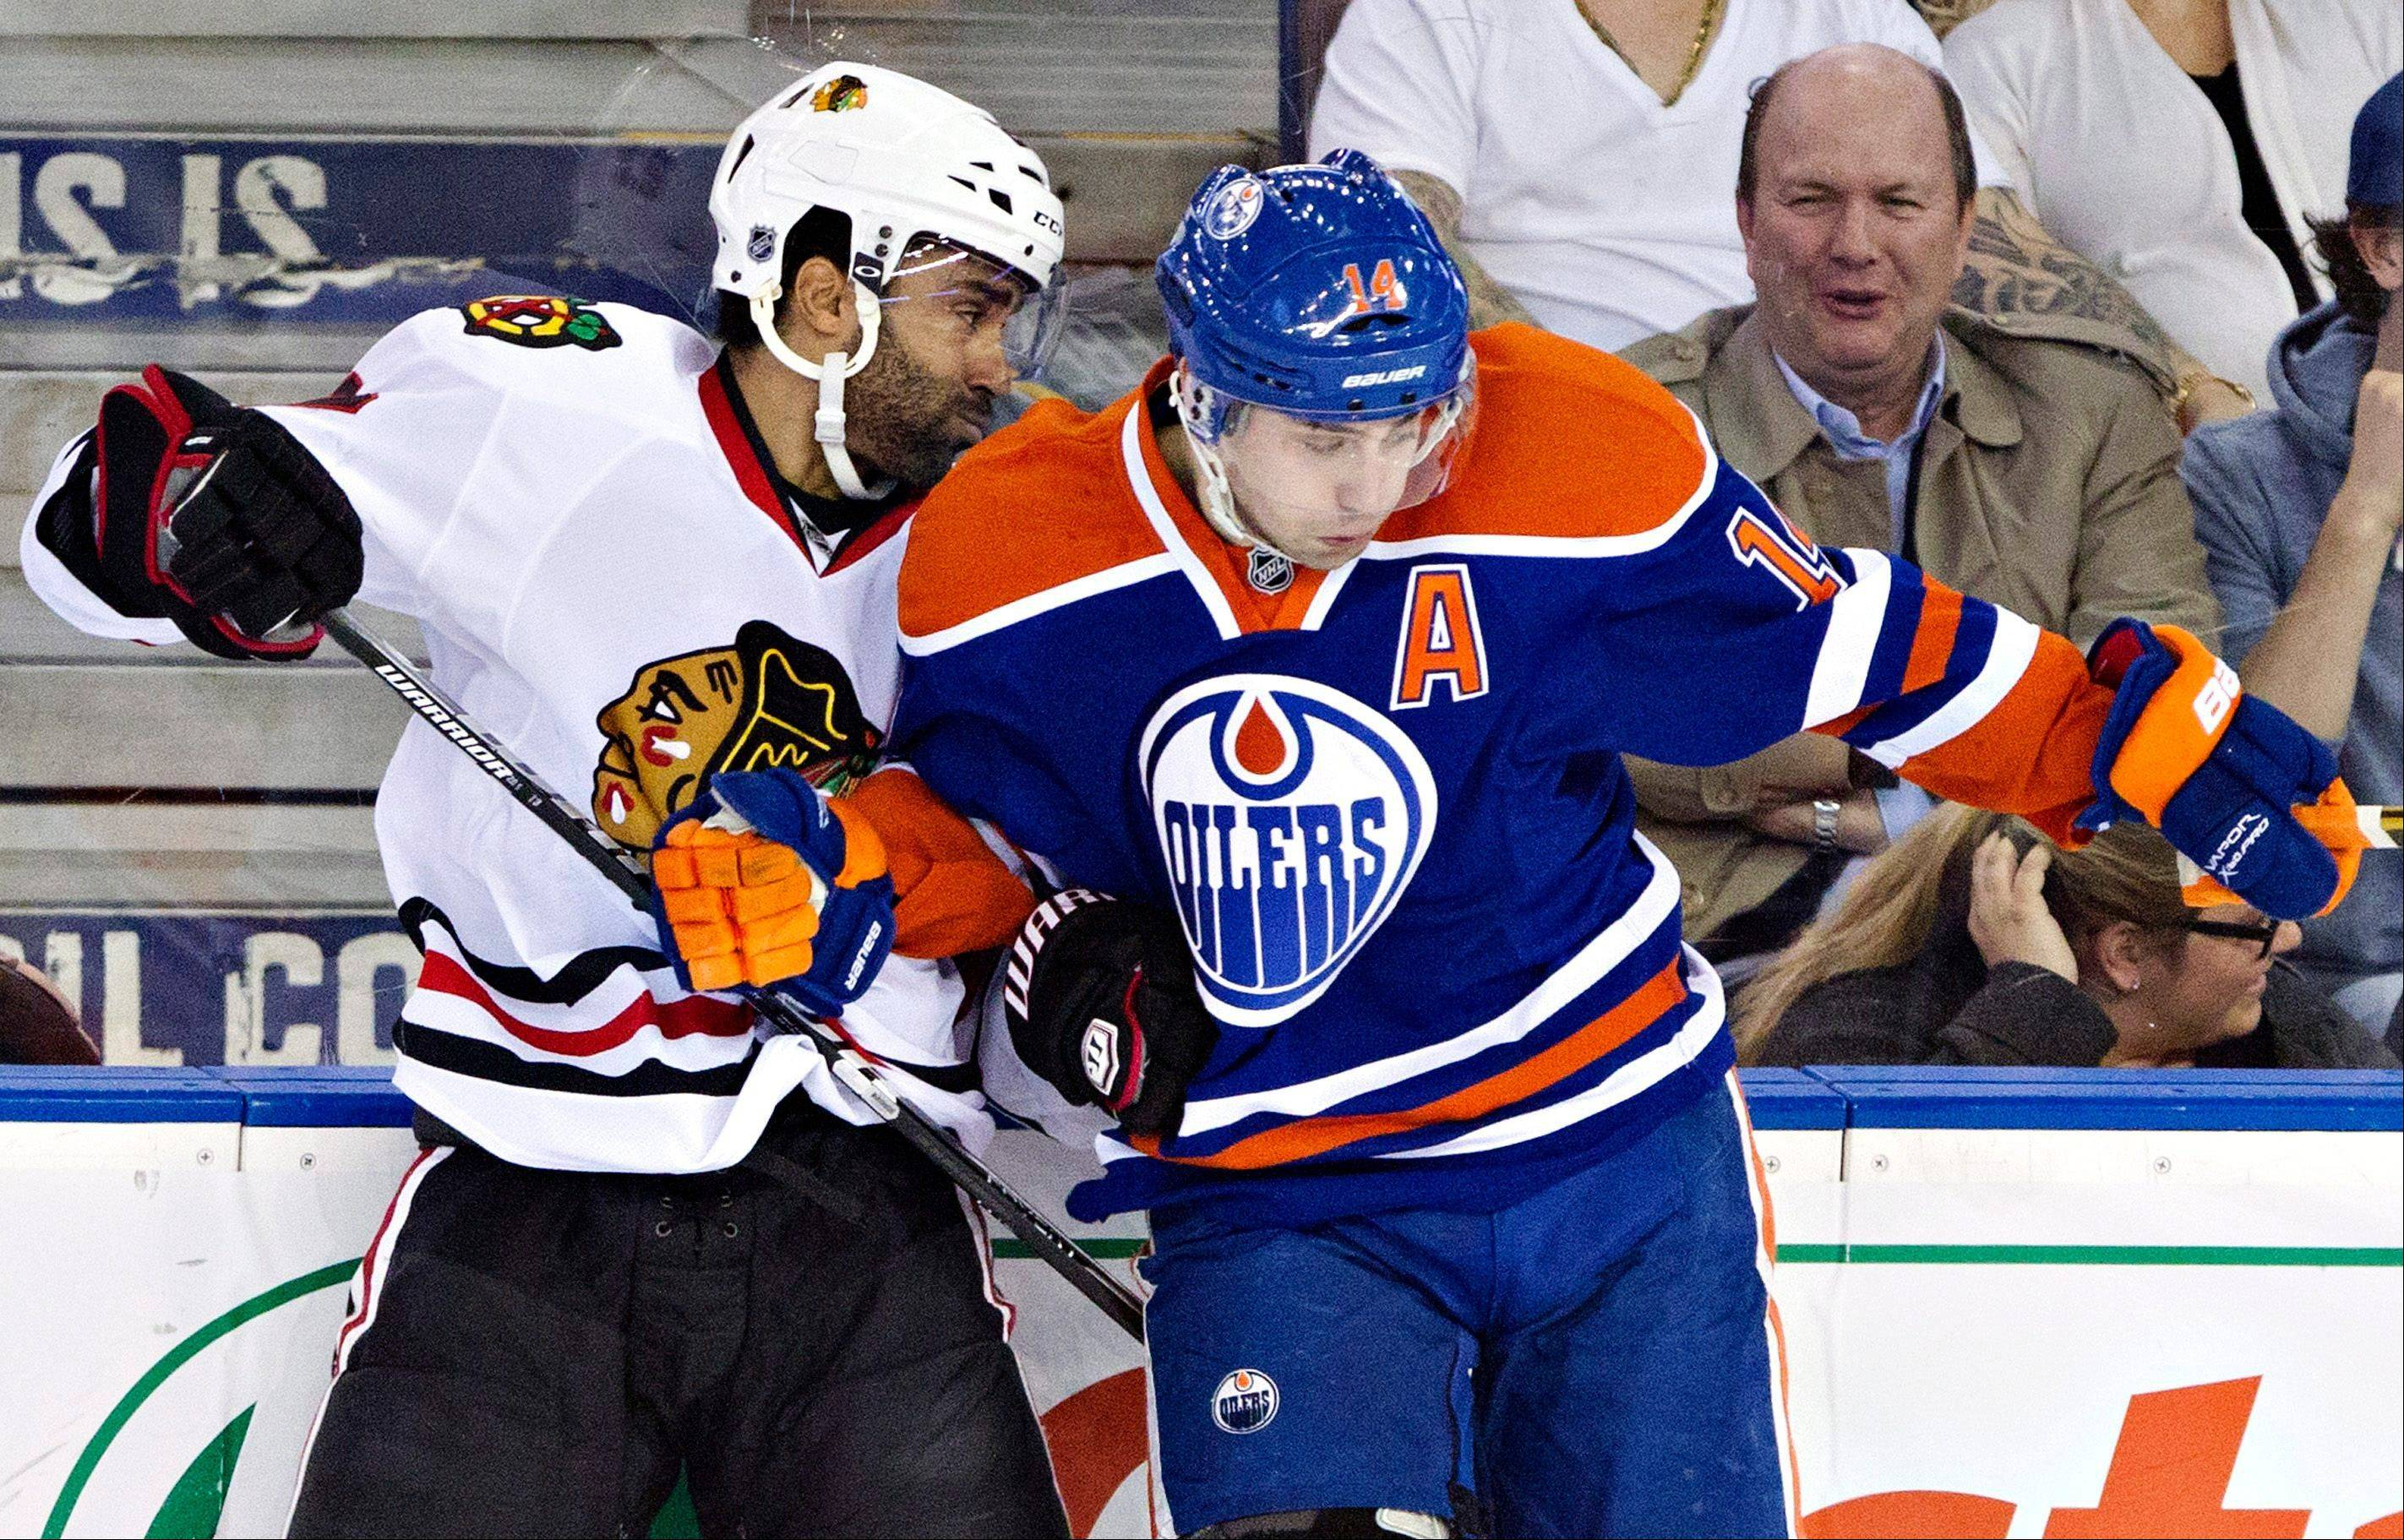 Chicago Blackhawks' Johnny Oduya, left, checks Edmonton Oilers' Jordan Eberle during the first period of their NHL hockey game in Edmonton, Alberta, Wednesday, April 24, 2013.